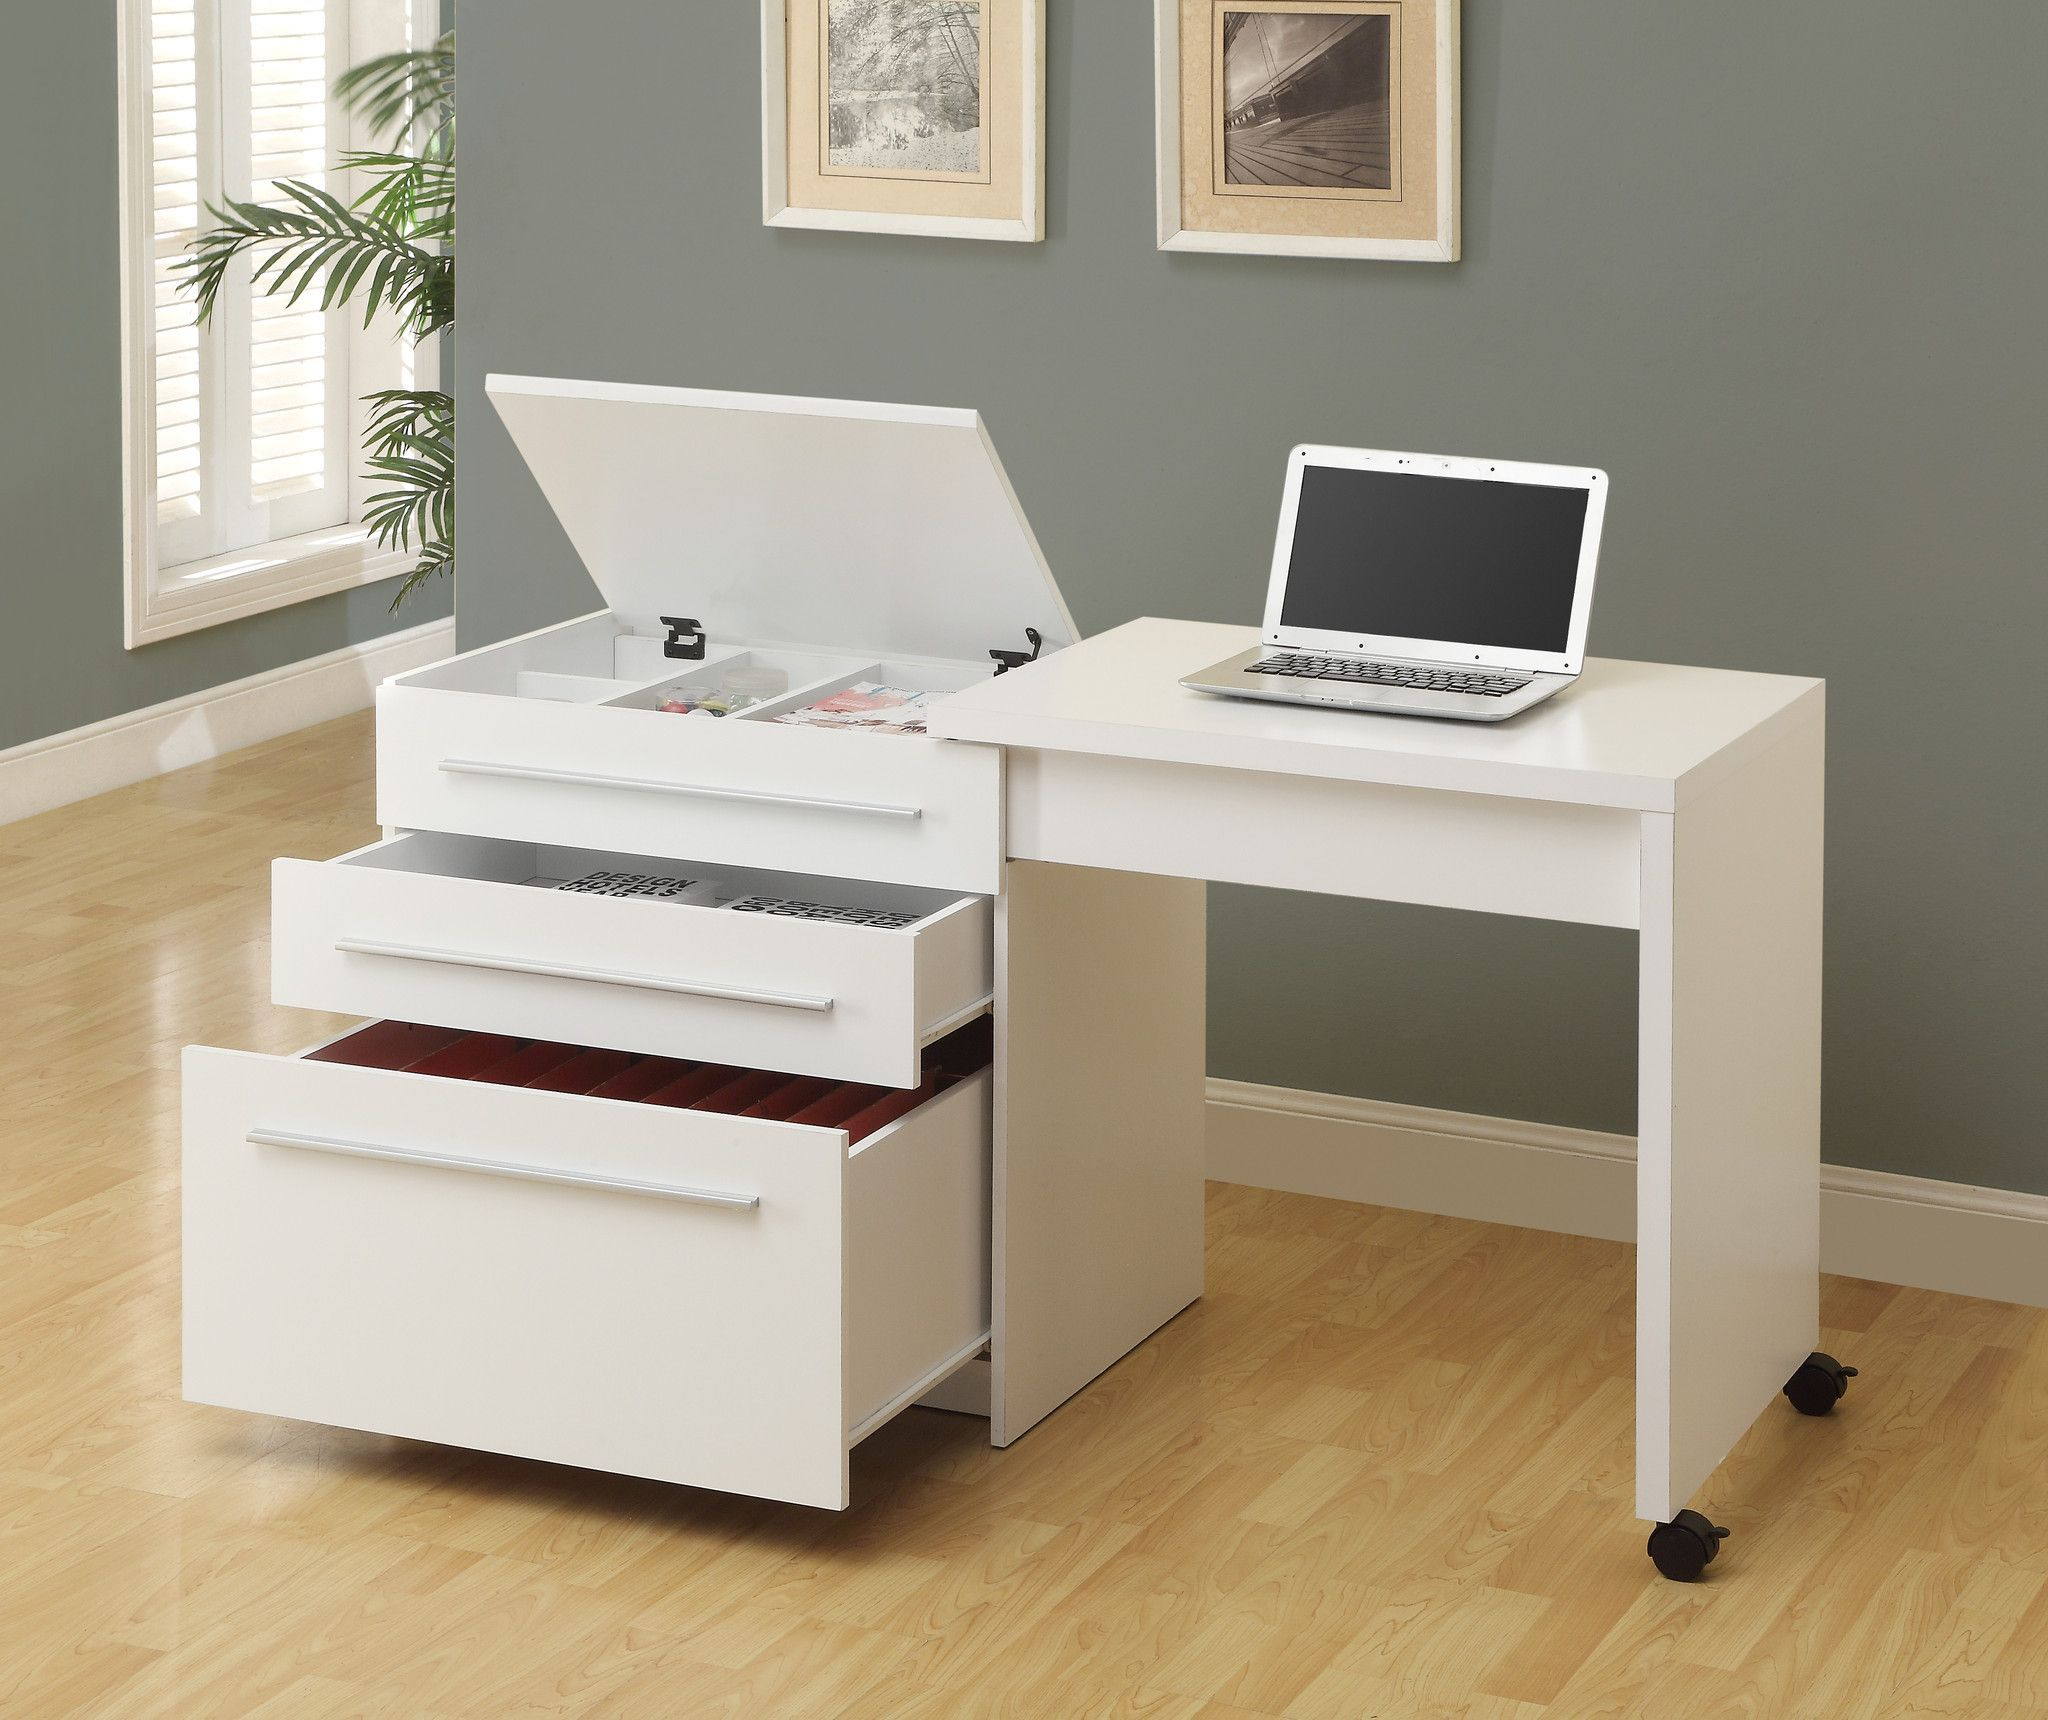 Computer Desk White Slide Out With Storage Drawers Computer